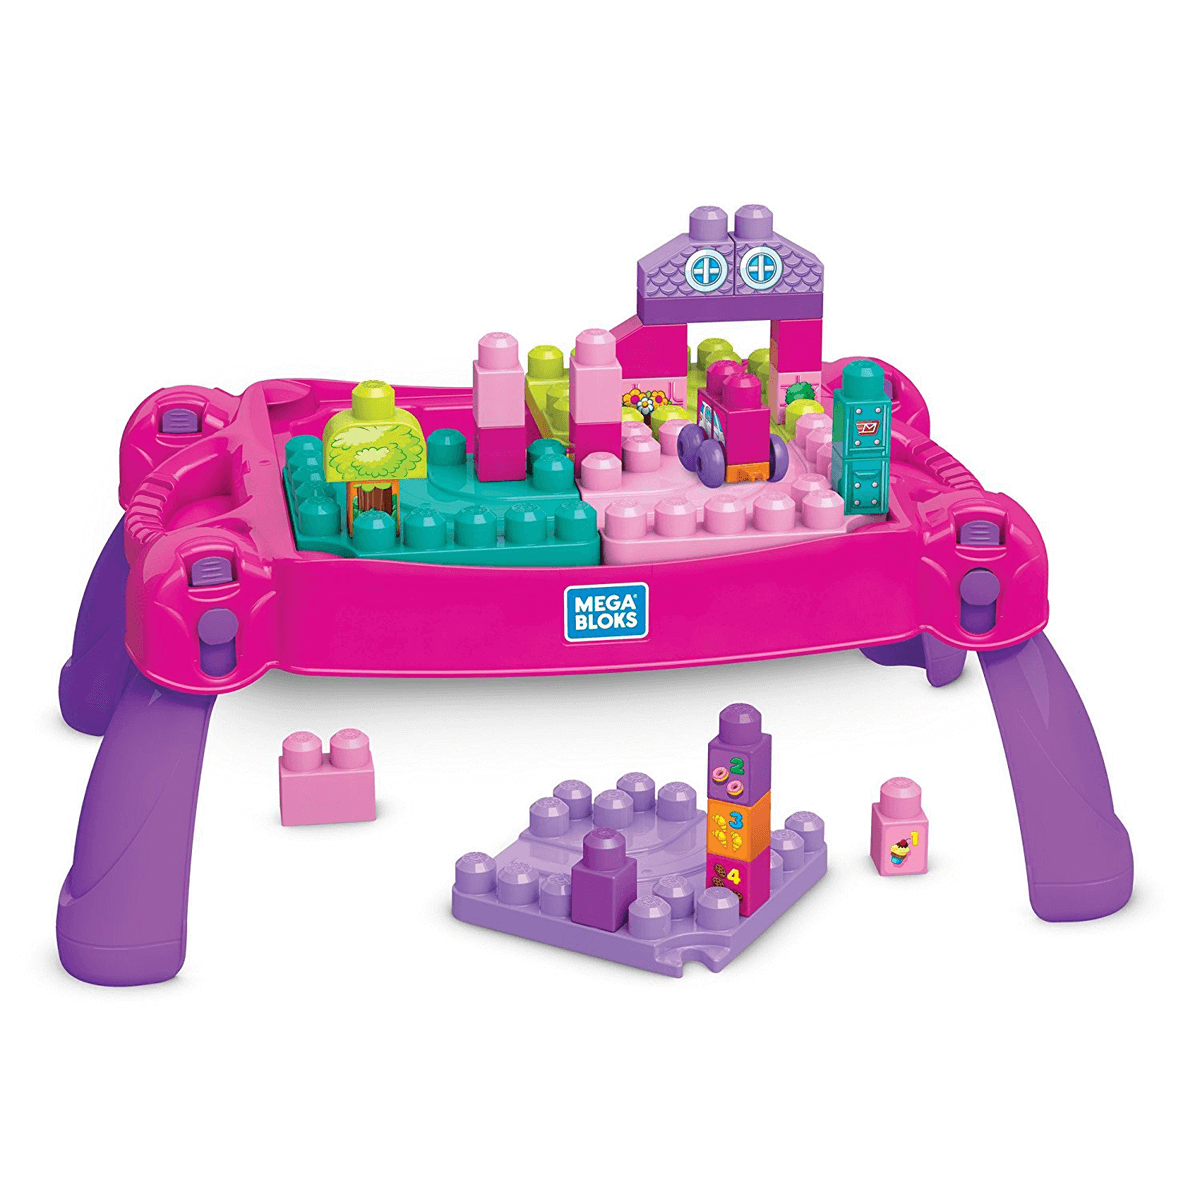 Mega Bloks Pink Build and Learn Table - 30 Pieces